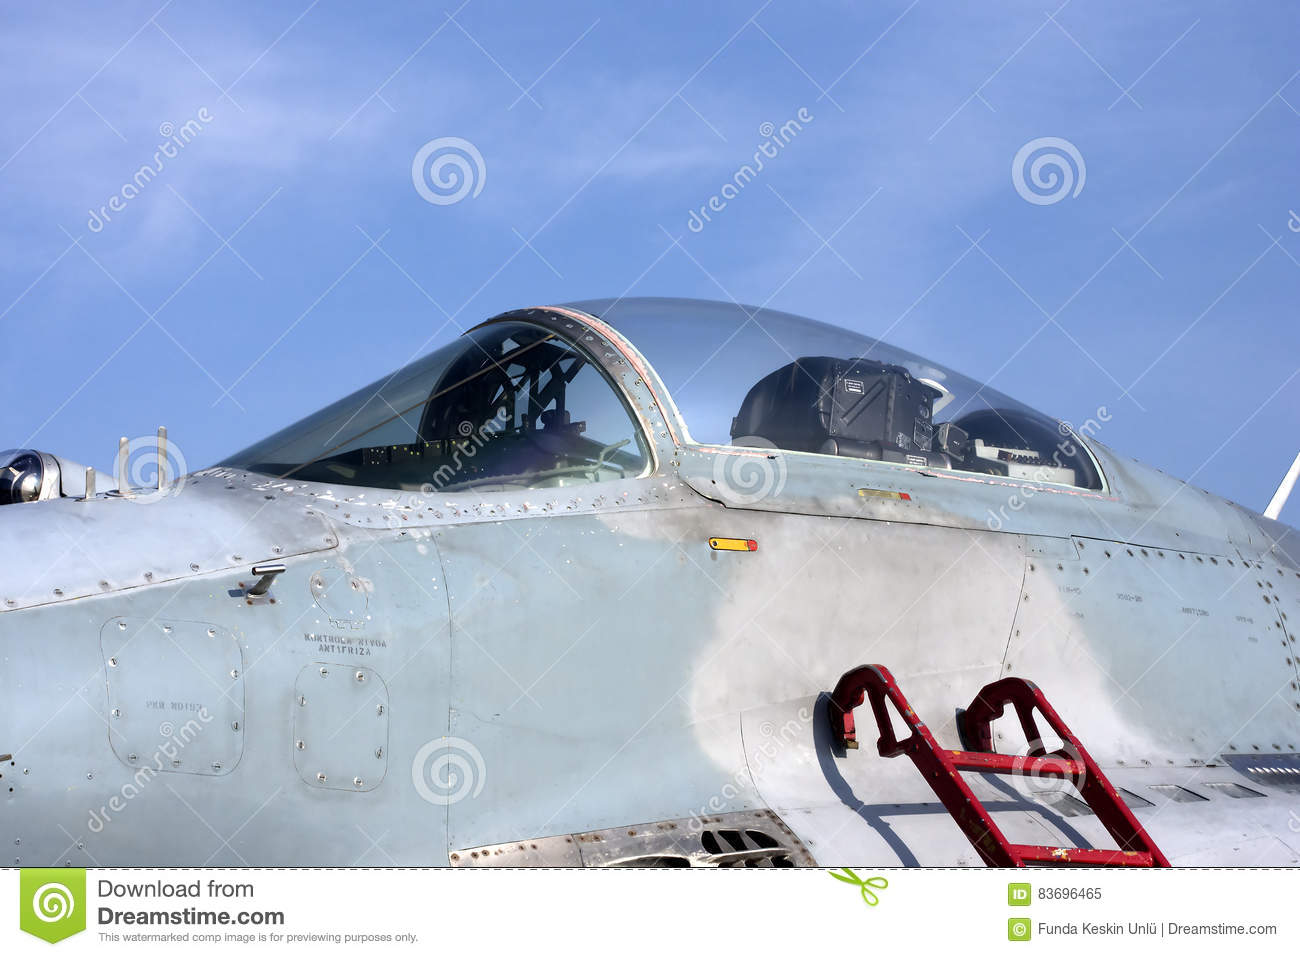 Detail of old plane mig 29 stock image  Image of serbia - 83696465